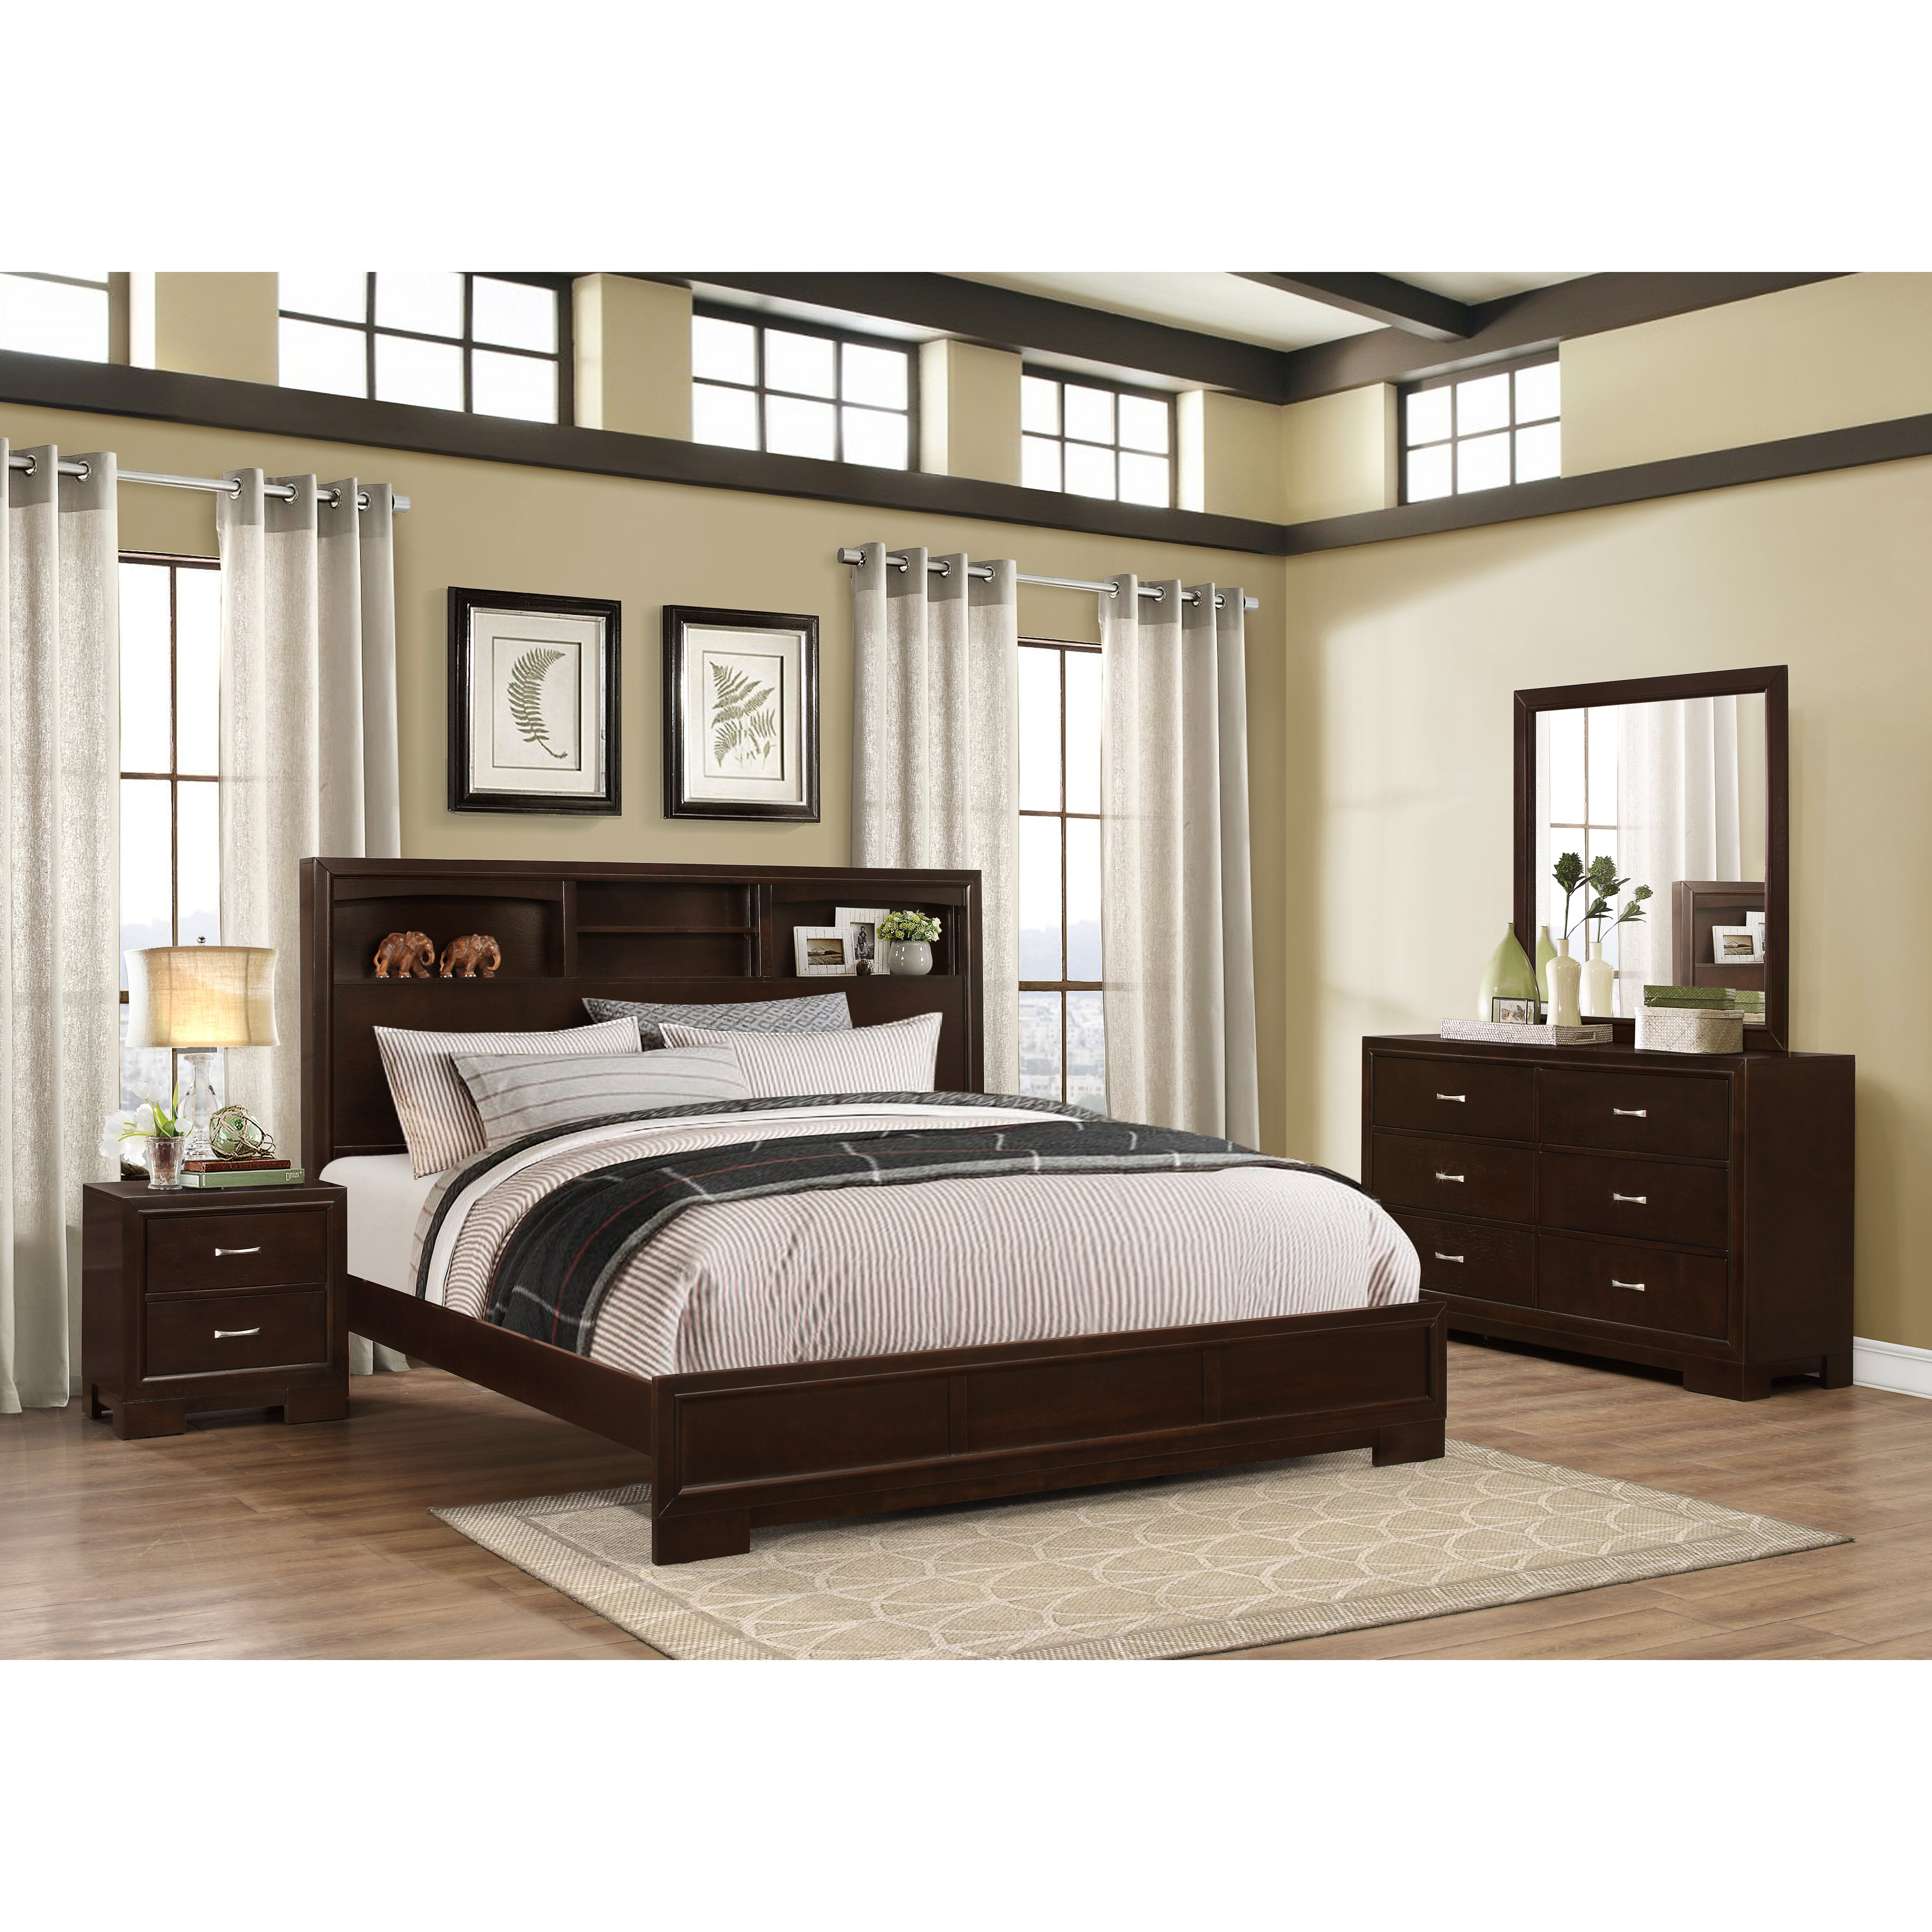 Roundhill Furniture Montana Panel 4 Piece Bedroom Set Reviews Wayfair